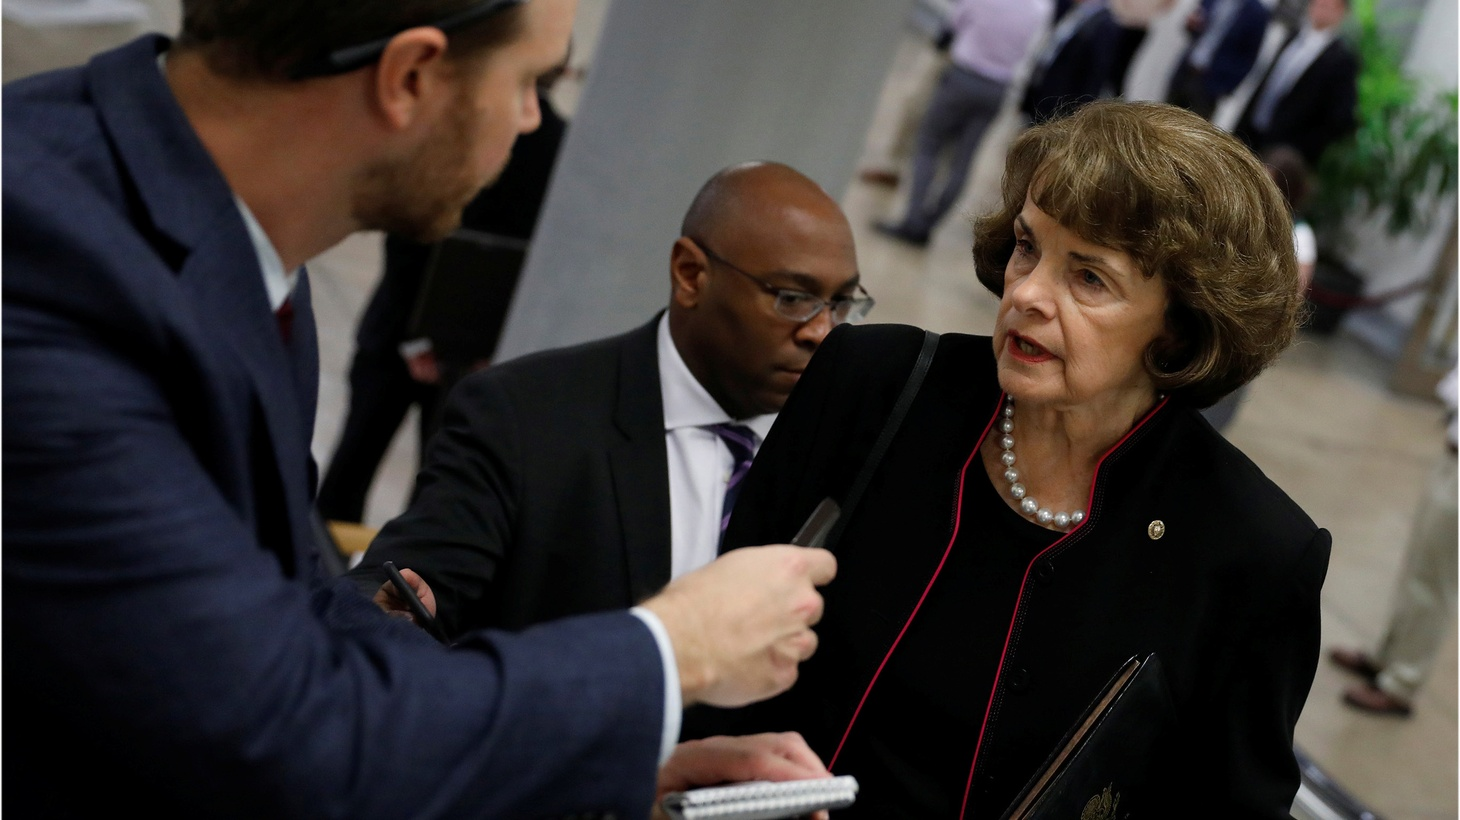 """Dianne Feinstein, the oldest serving U.S. Senator, wants another six years. She is """"all in,"""" according to a tweet from her campaign. Polls show Californians are split as to whether she should seek a fifth full term."""